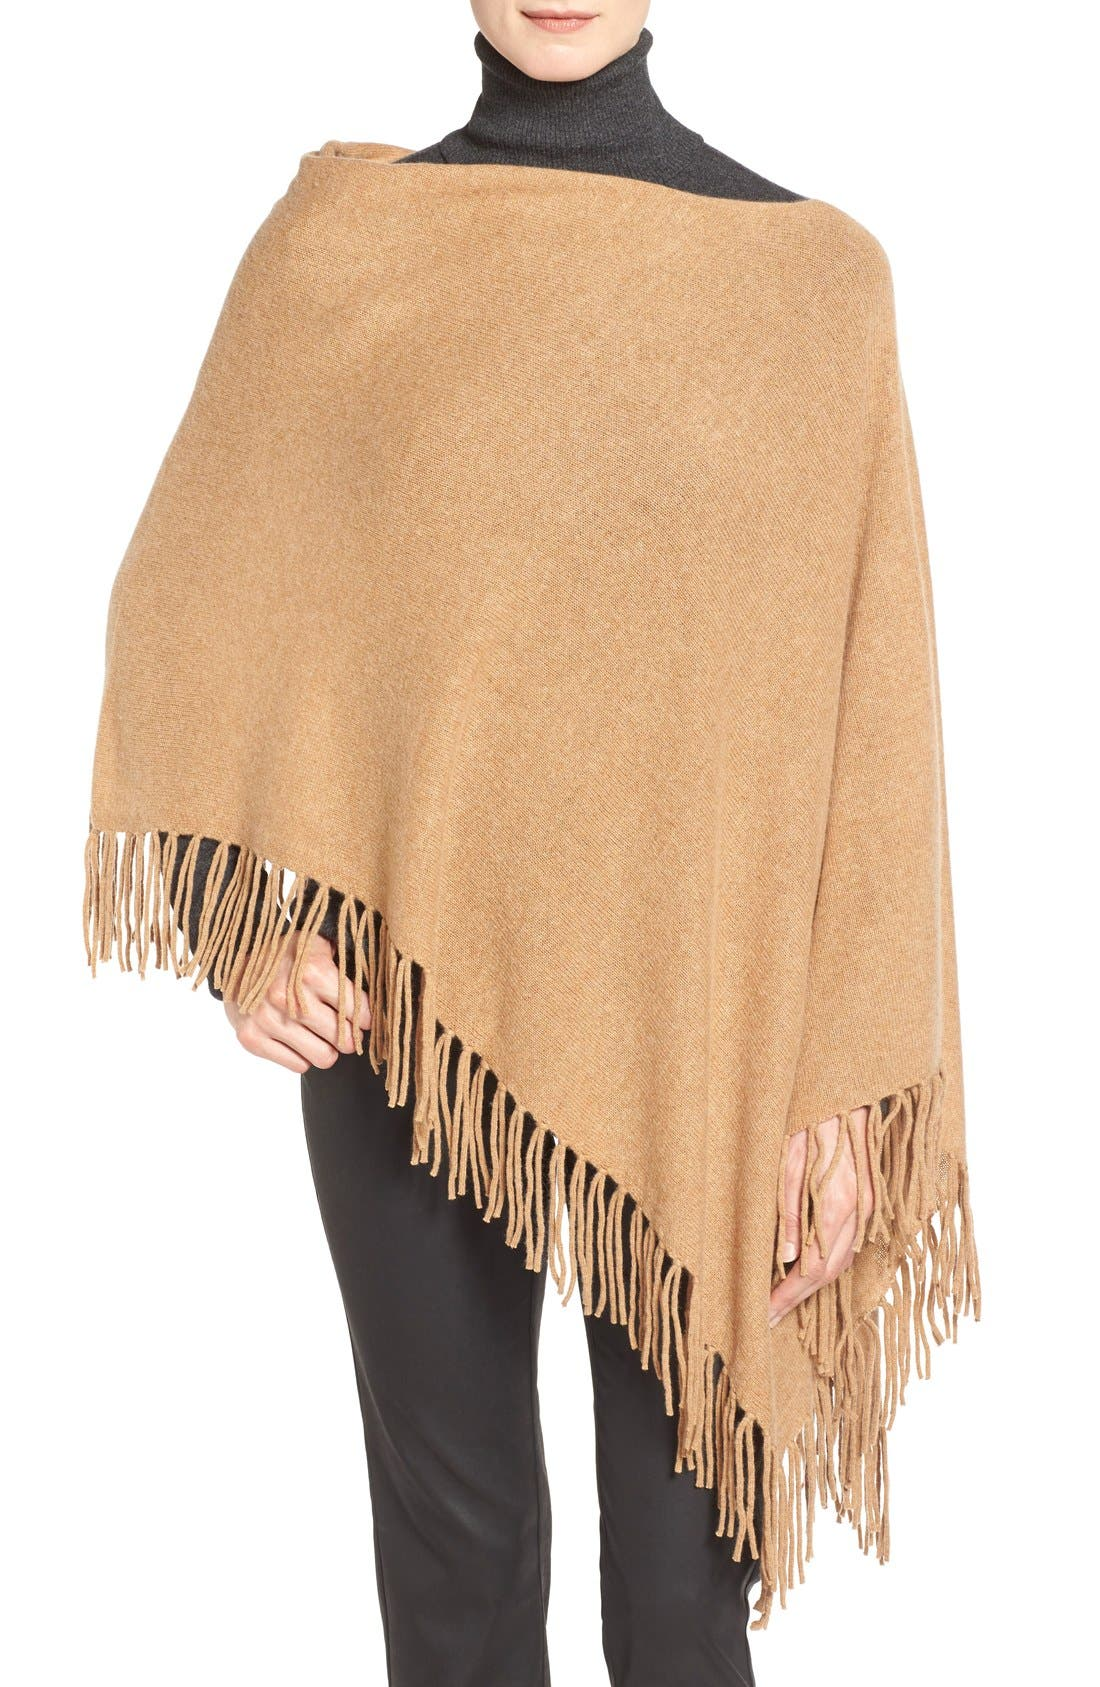 Main Image - White + Warren Convertible Cashmere Poncho with Fringe